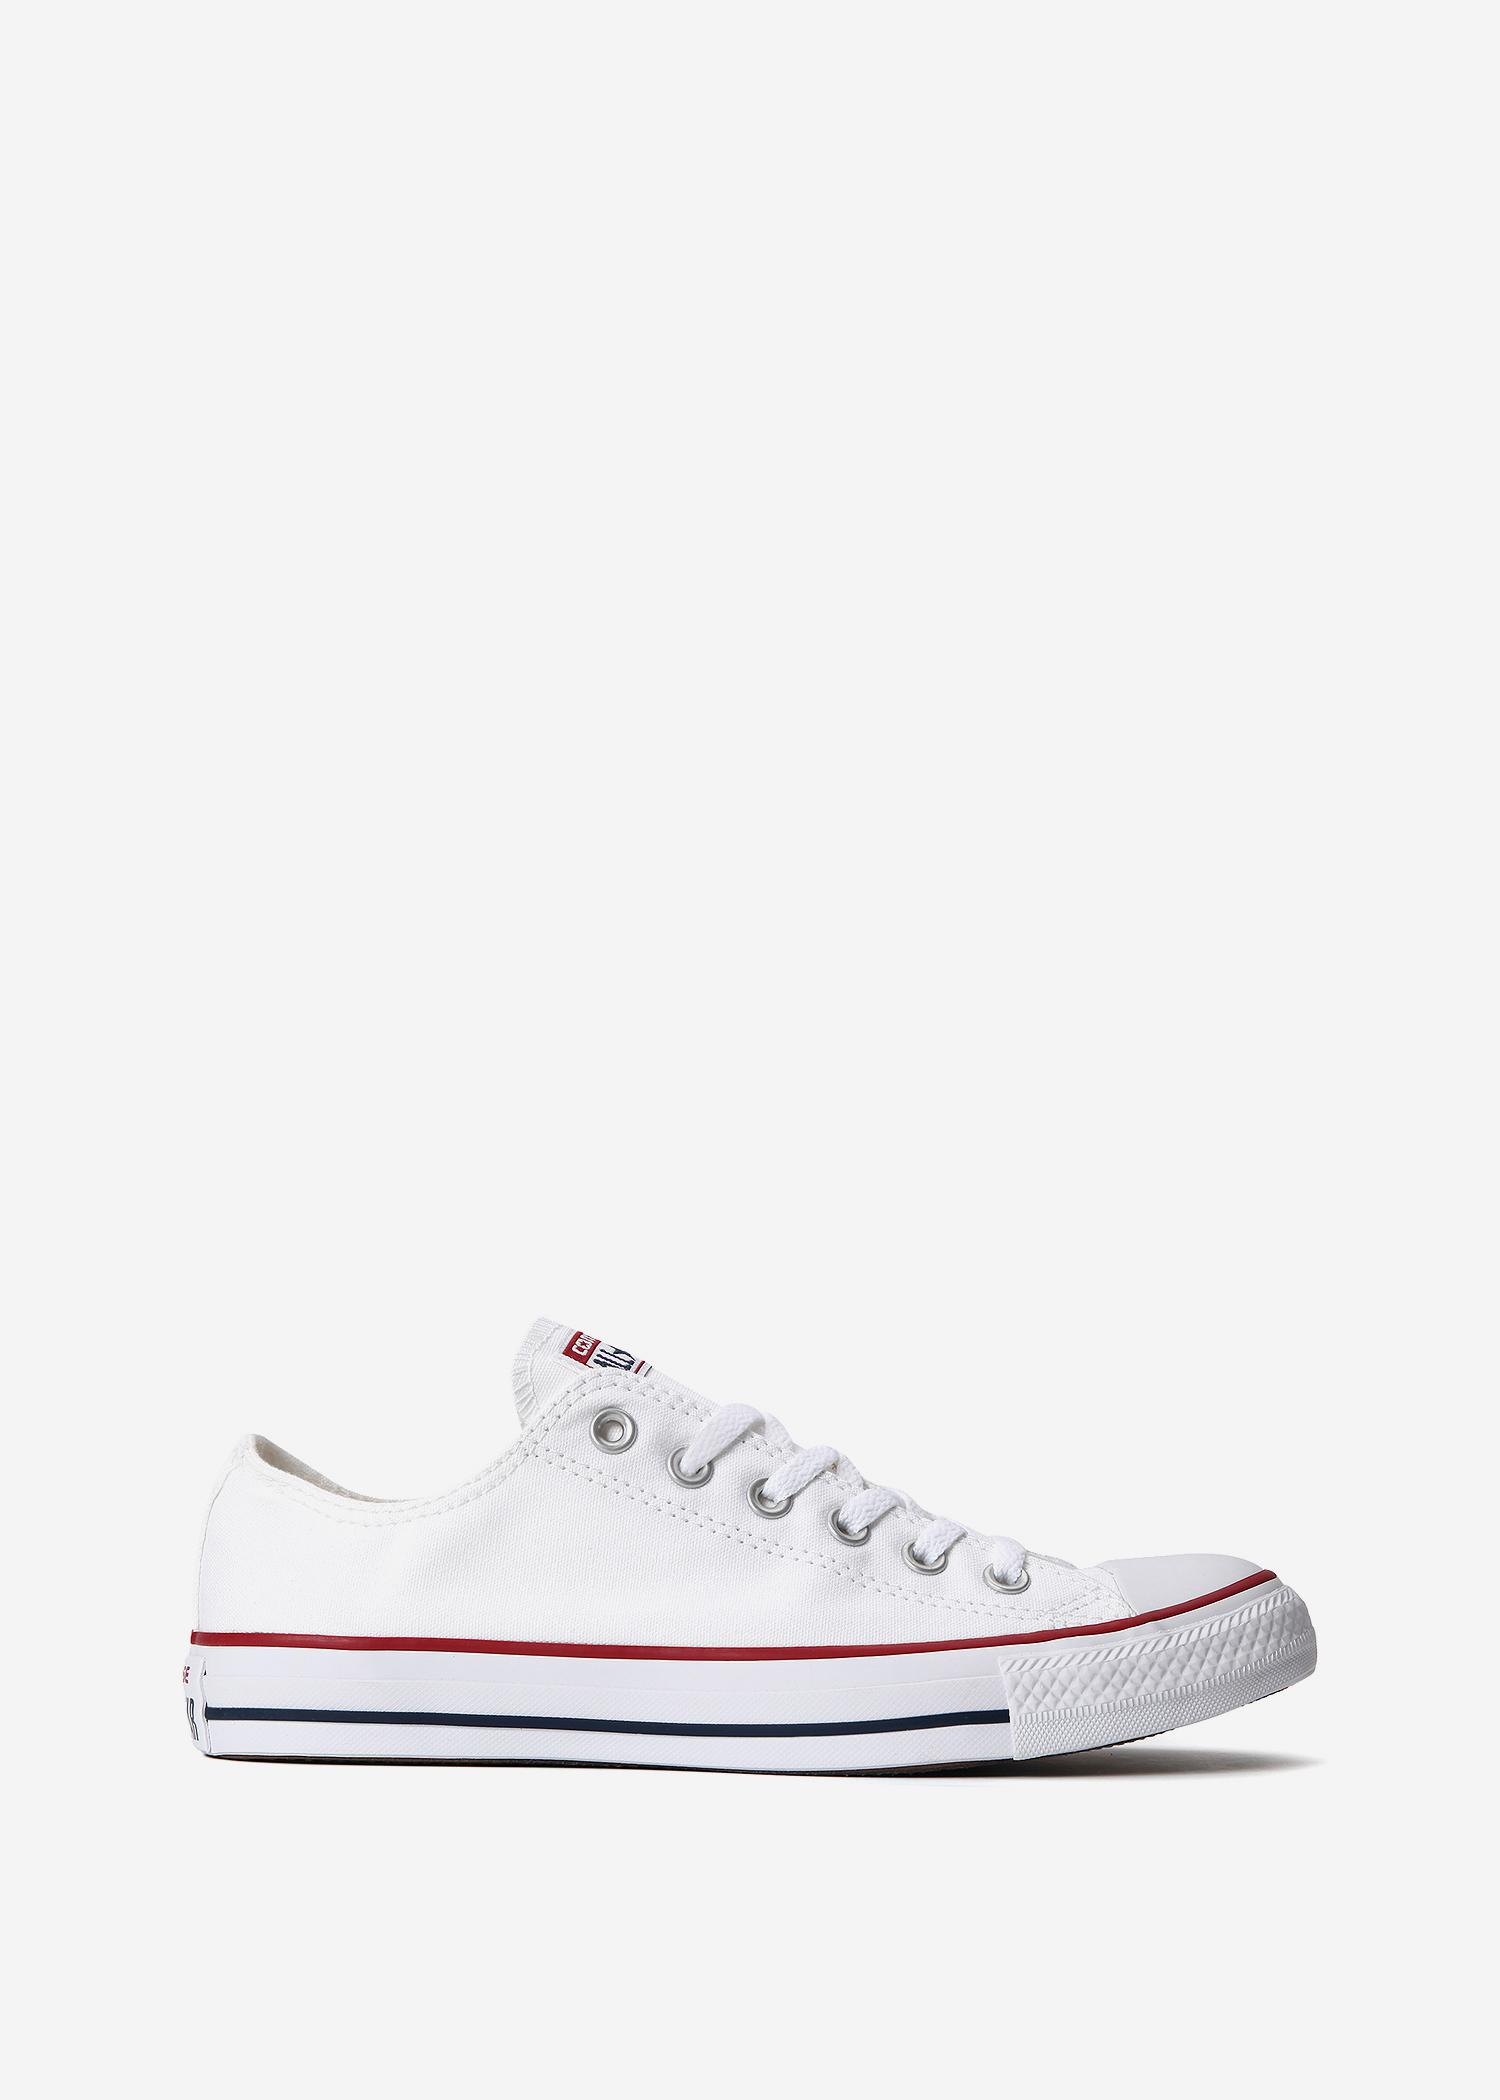 1db0ce08795ca4 Lyst - Converse Chuck Taylor All Star Ox in White